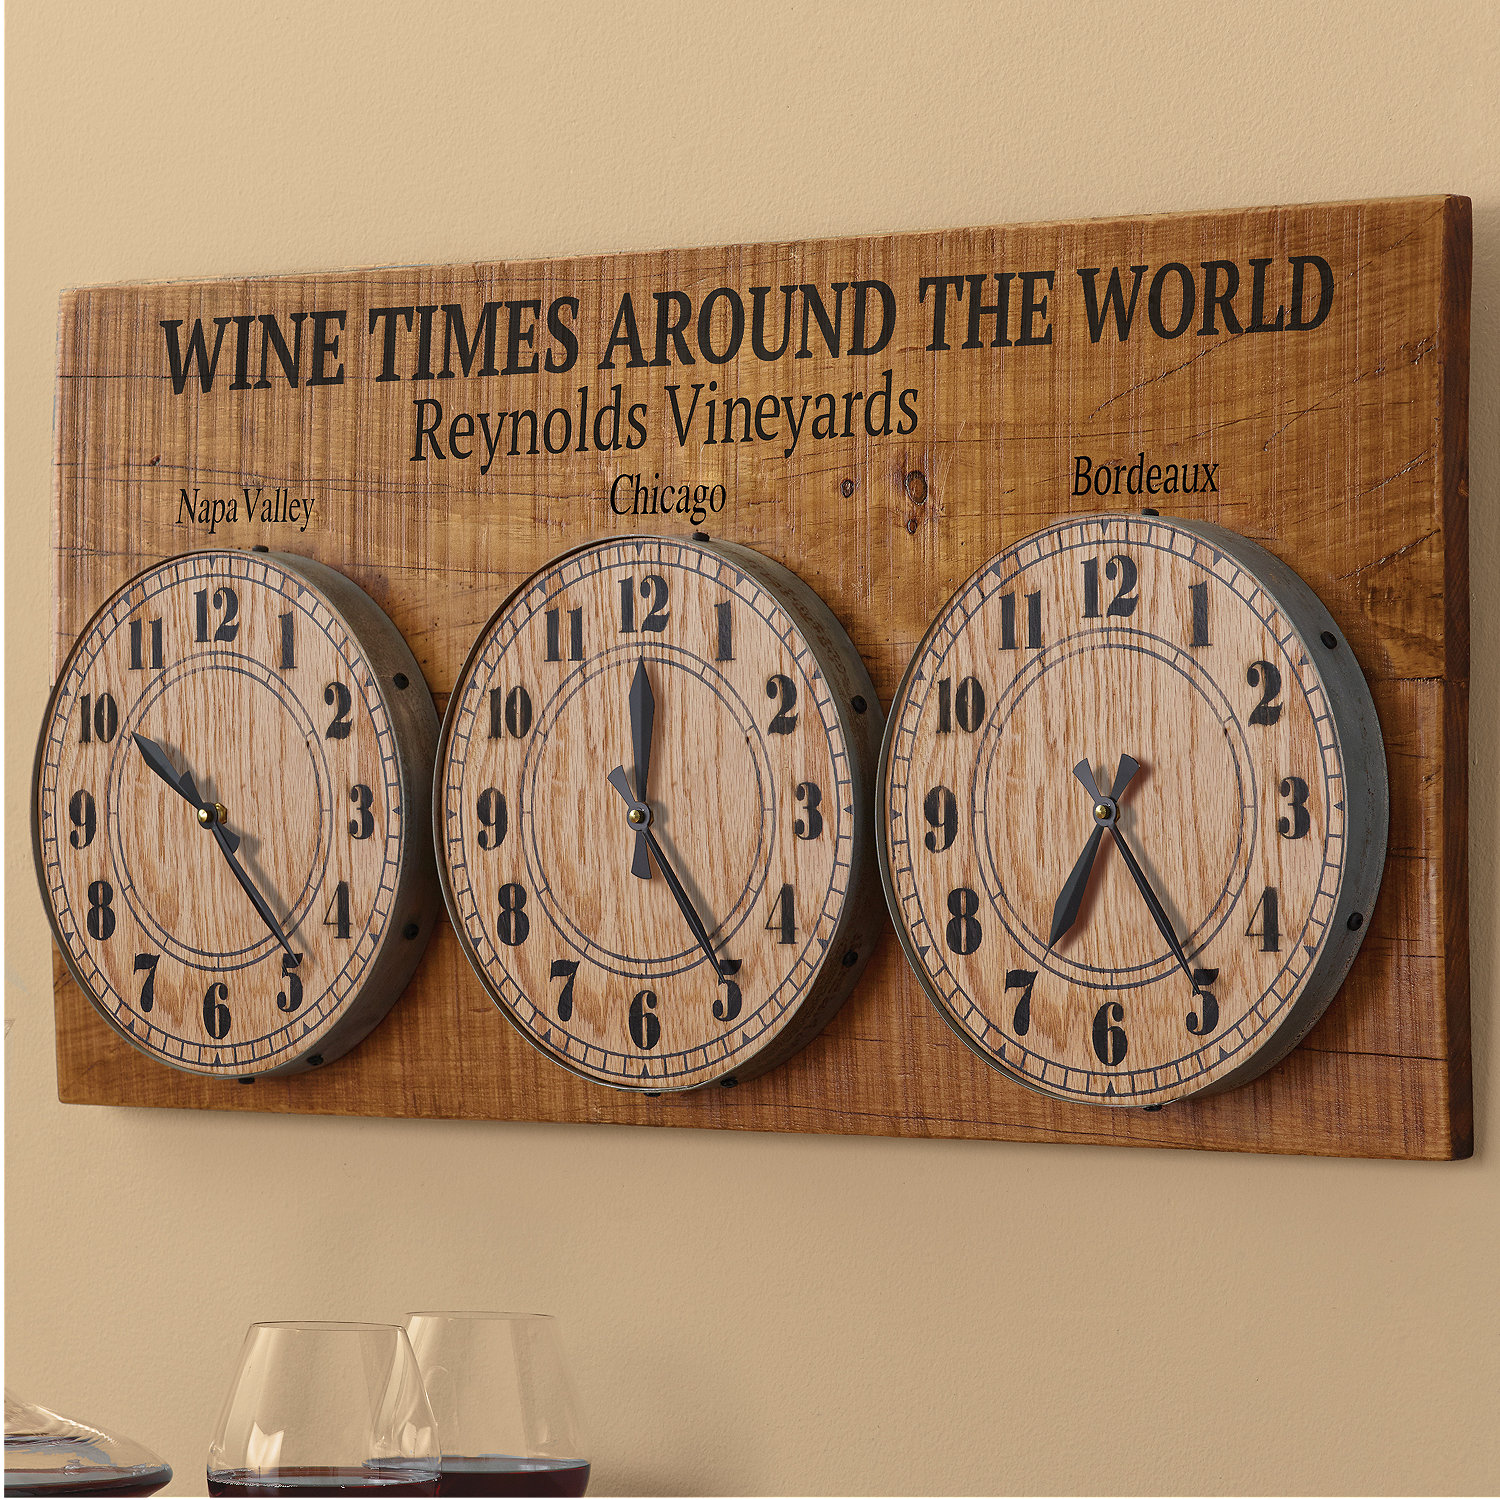 Personalized wine times around the world clock wine enthusiast preparing zoom amipublicfo Choice Image